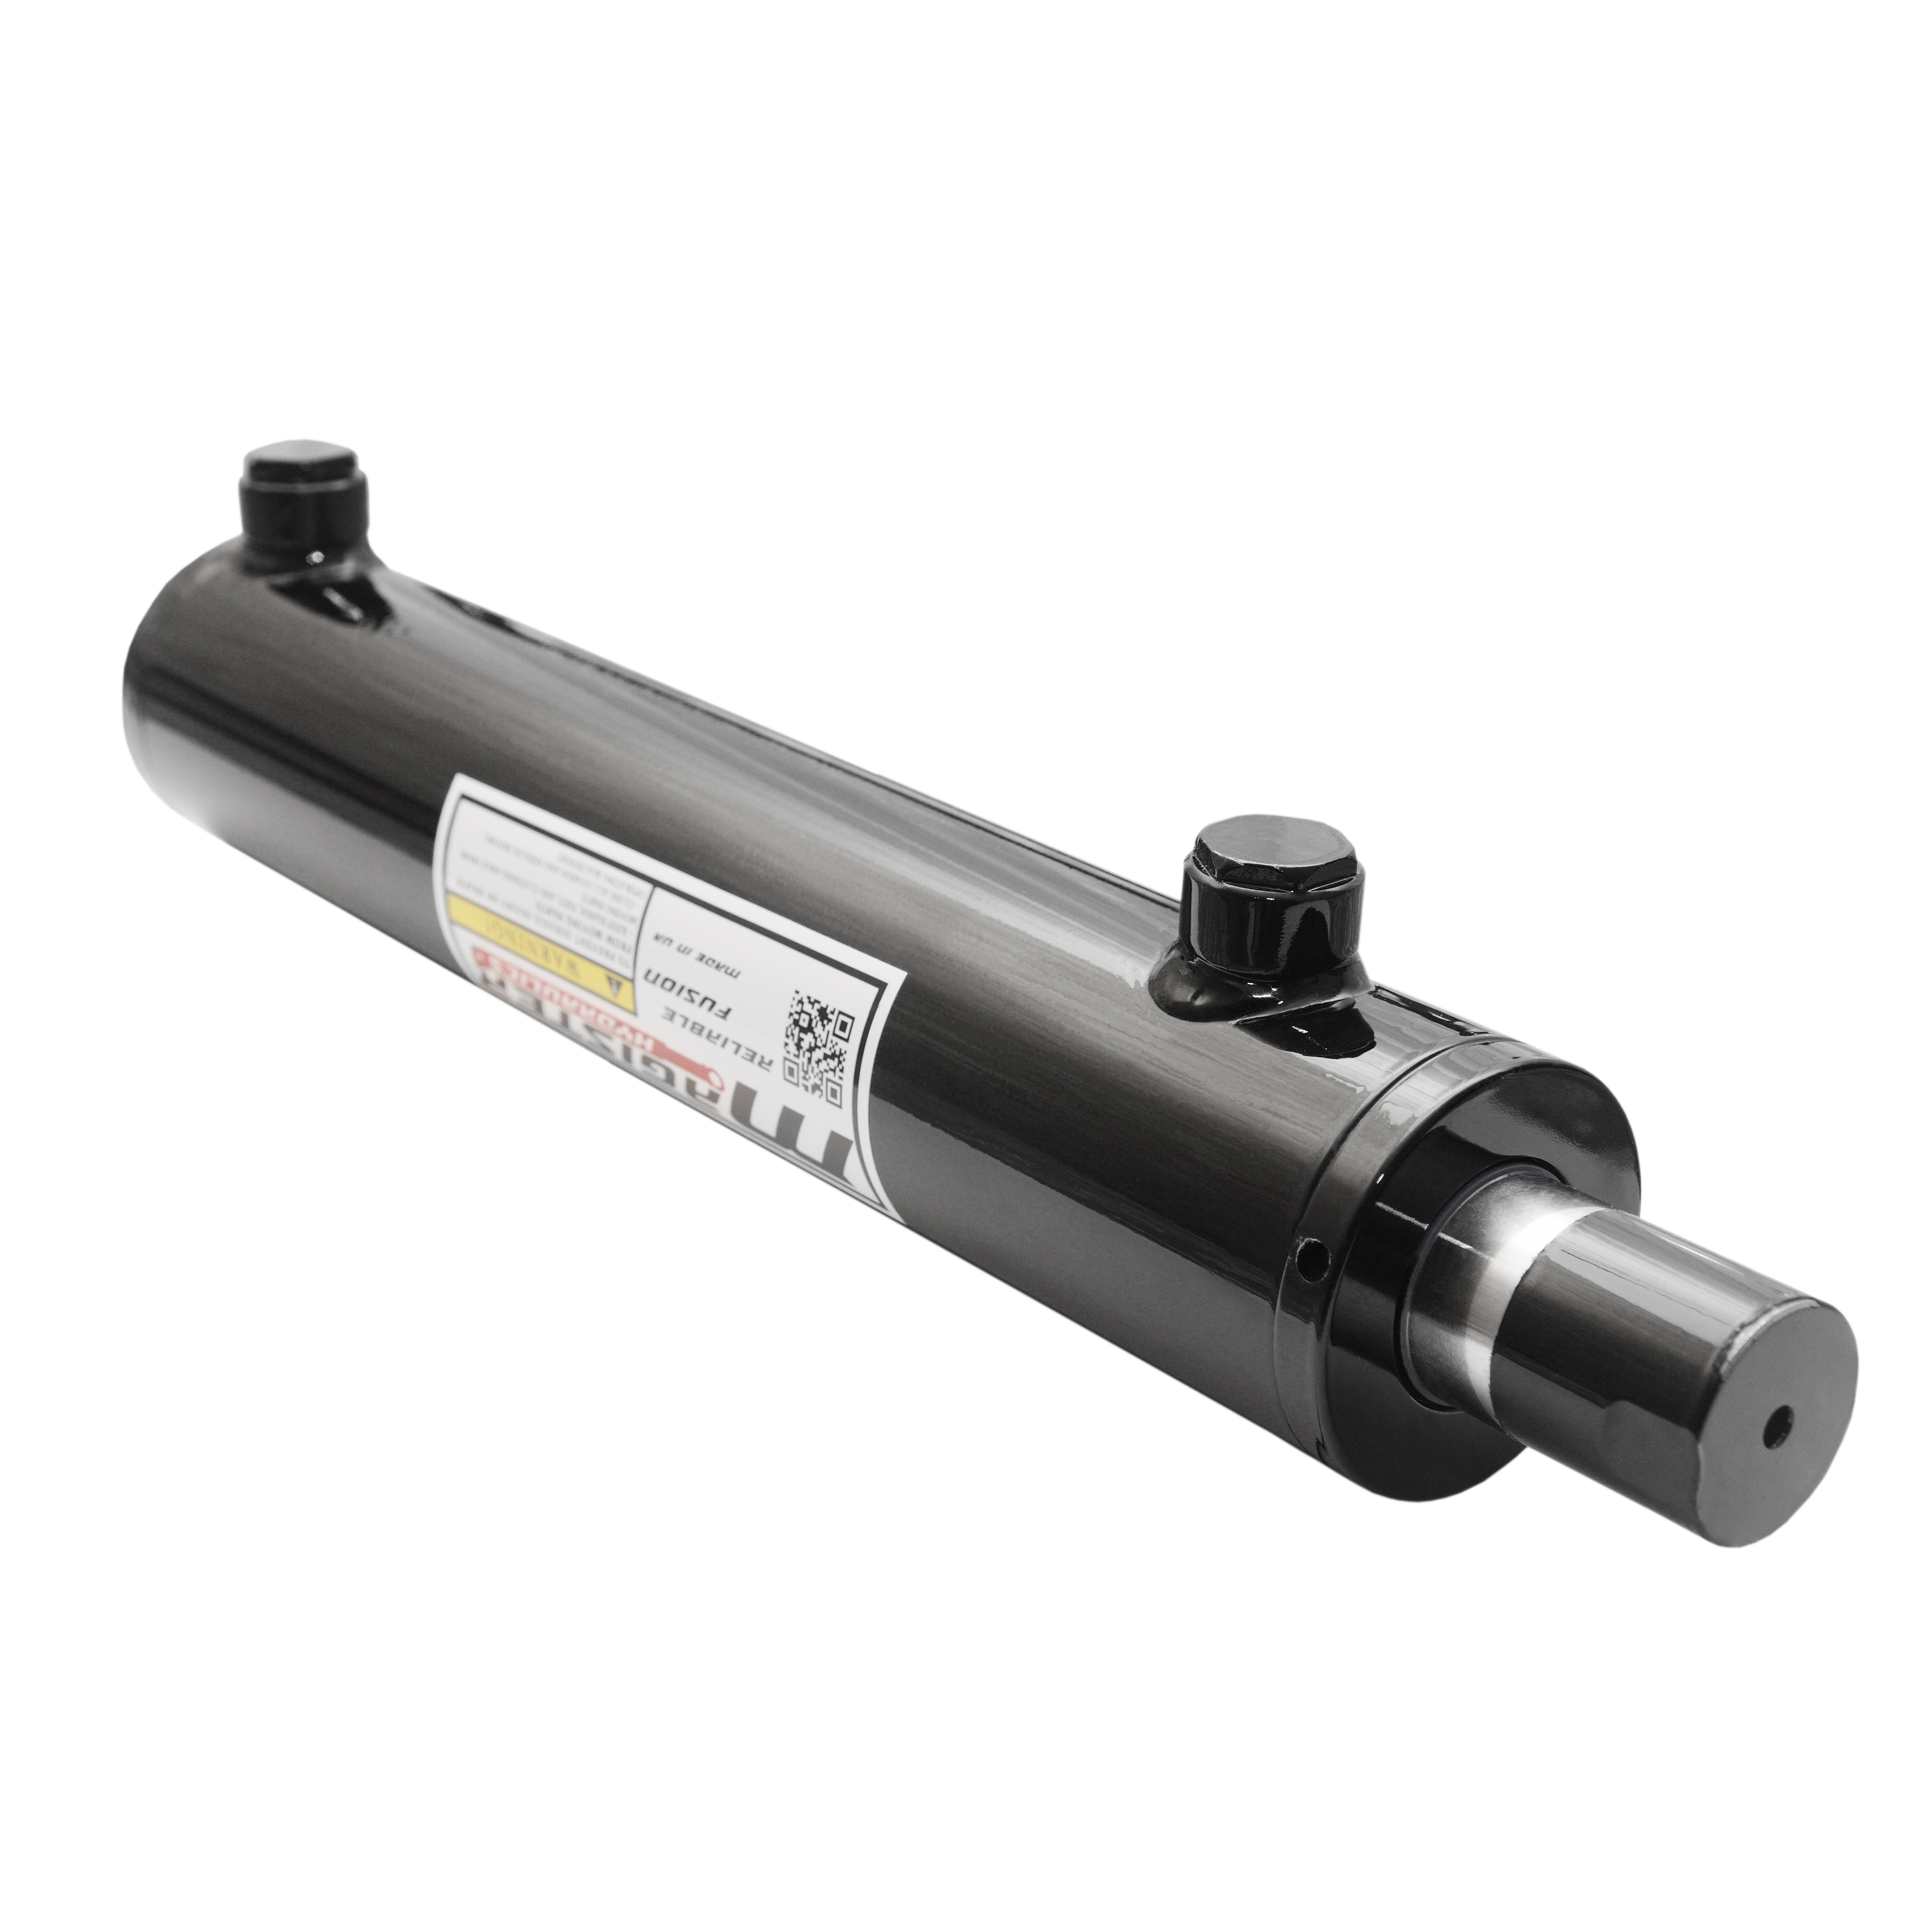 2 bore x 8 stroke hydraulic cylinder, welded universal double acting cylinder | Magister Hydraulics